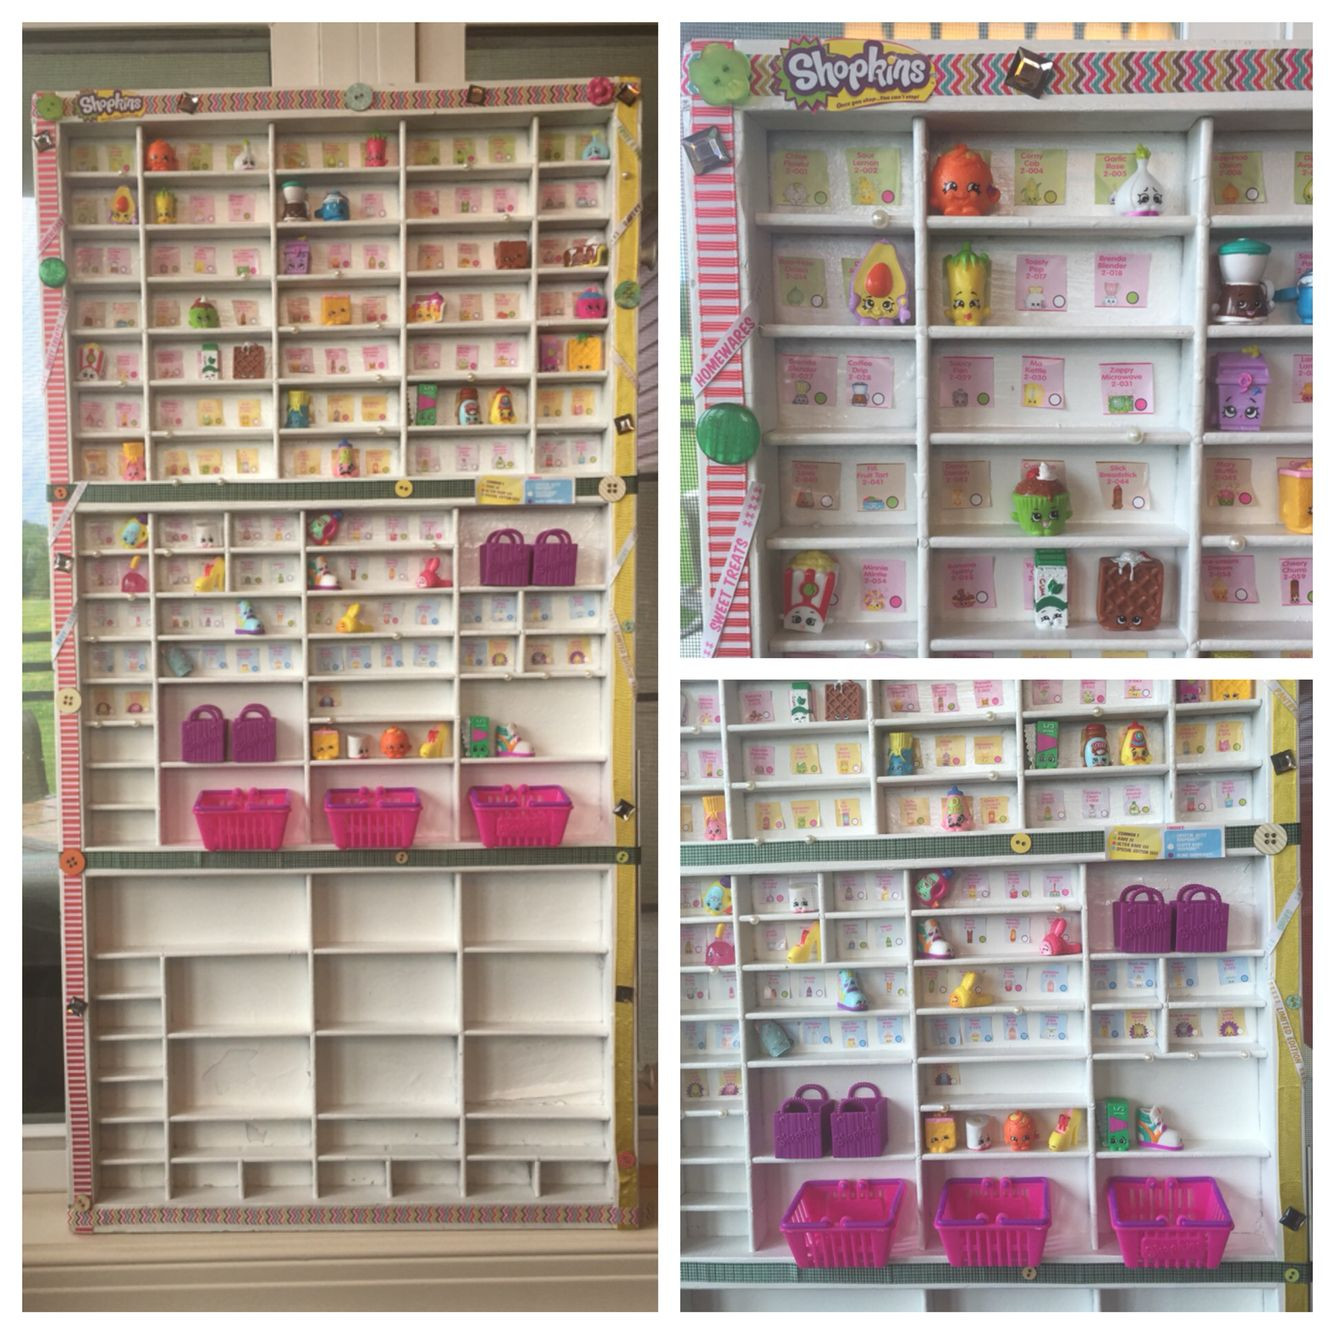 Best ideas about Shopkins Organizer DIY . Save or Pin Shopkins display homemade from and antique drawer Now.